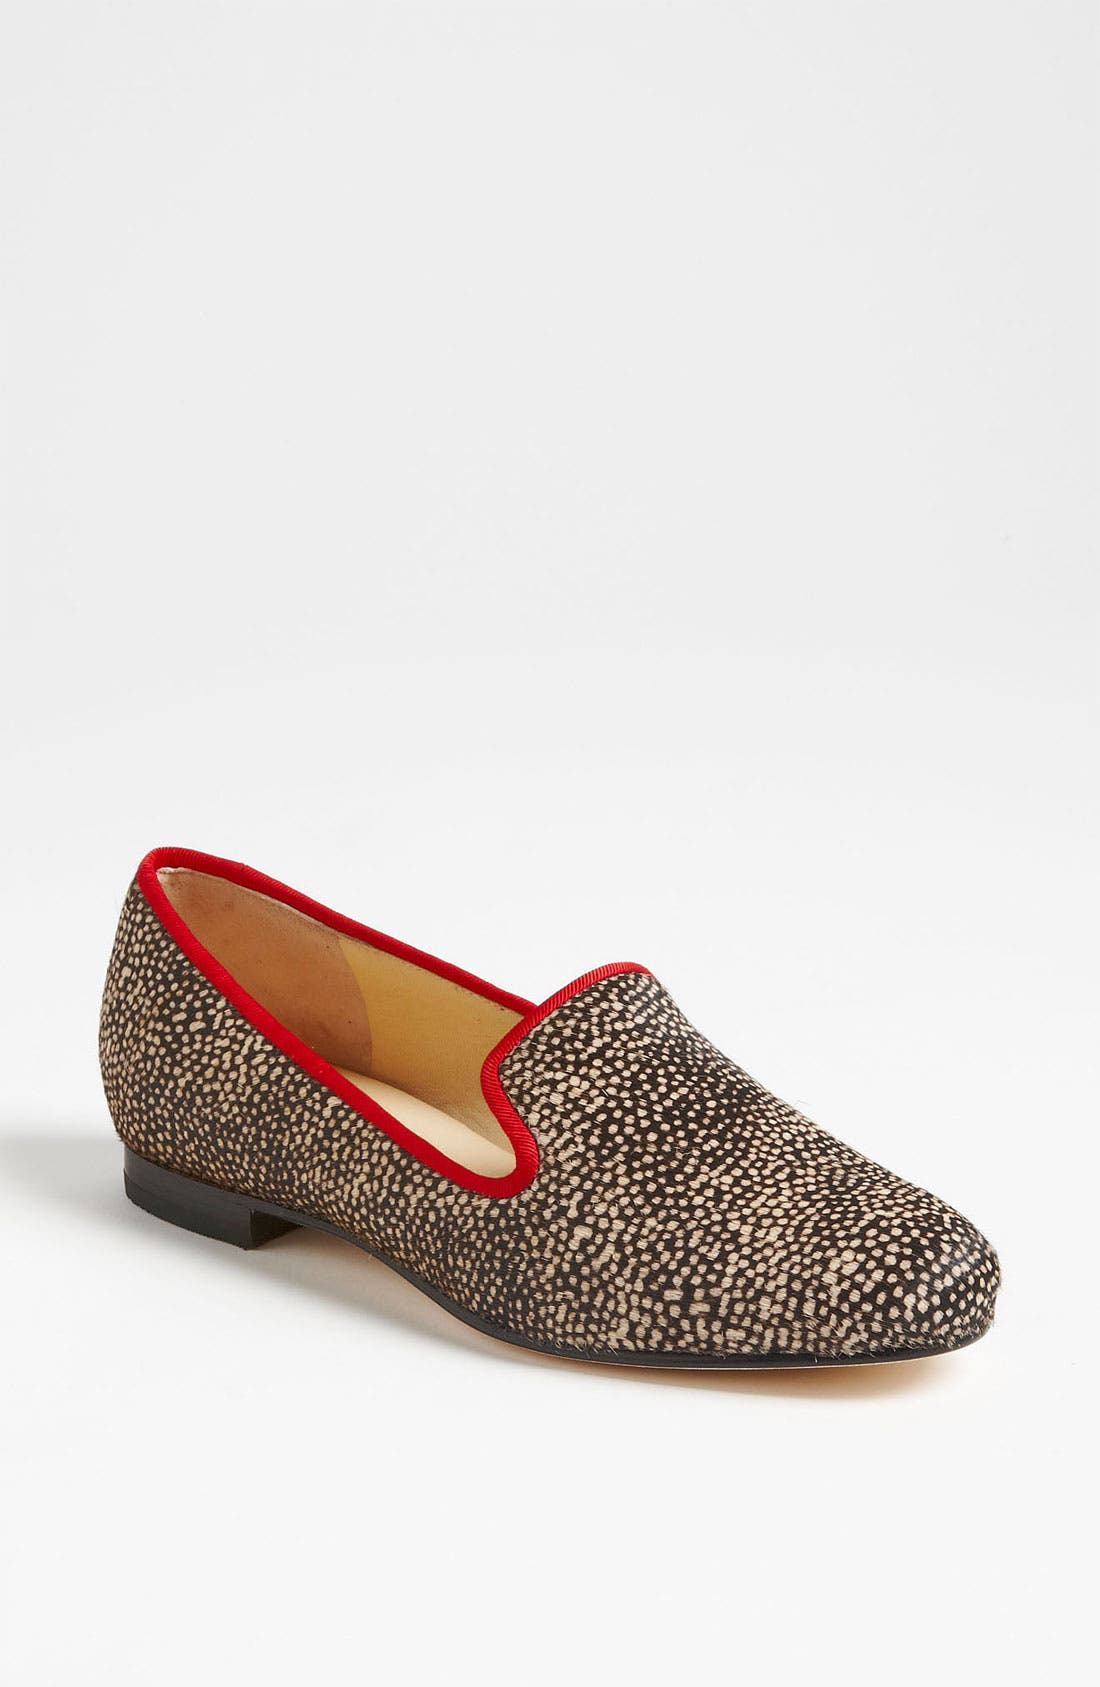 Alternate Image 1 Selected - Cole Haan 'Sabrina' Loafer